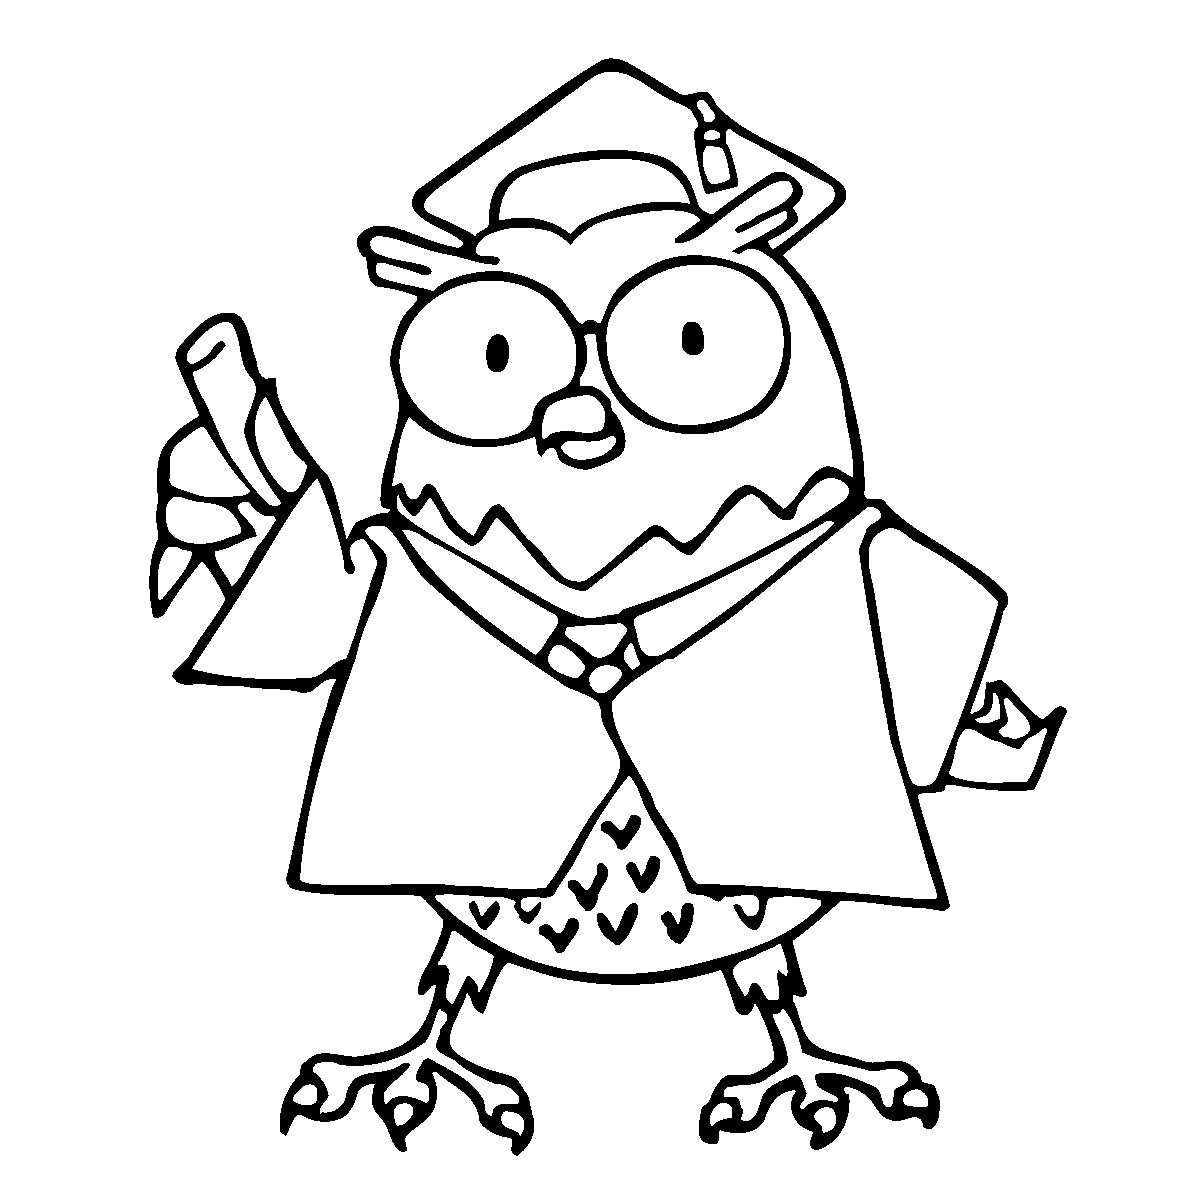 1200x1200 Animal Printable Coloring Pages For Adults Owl Coloring Pages